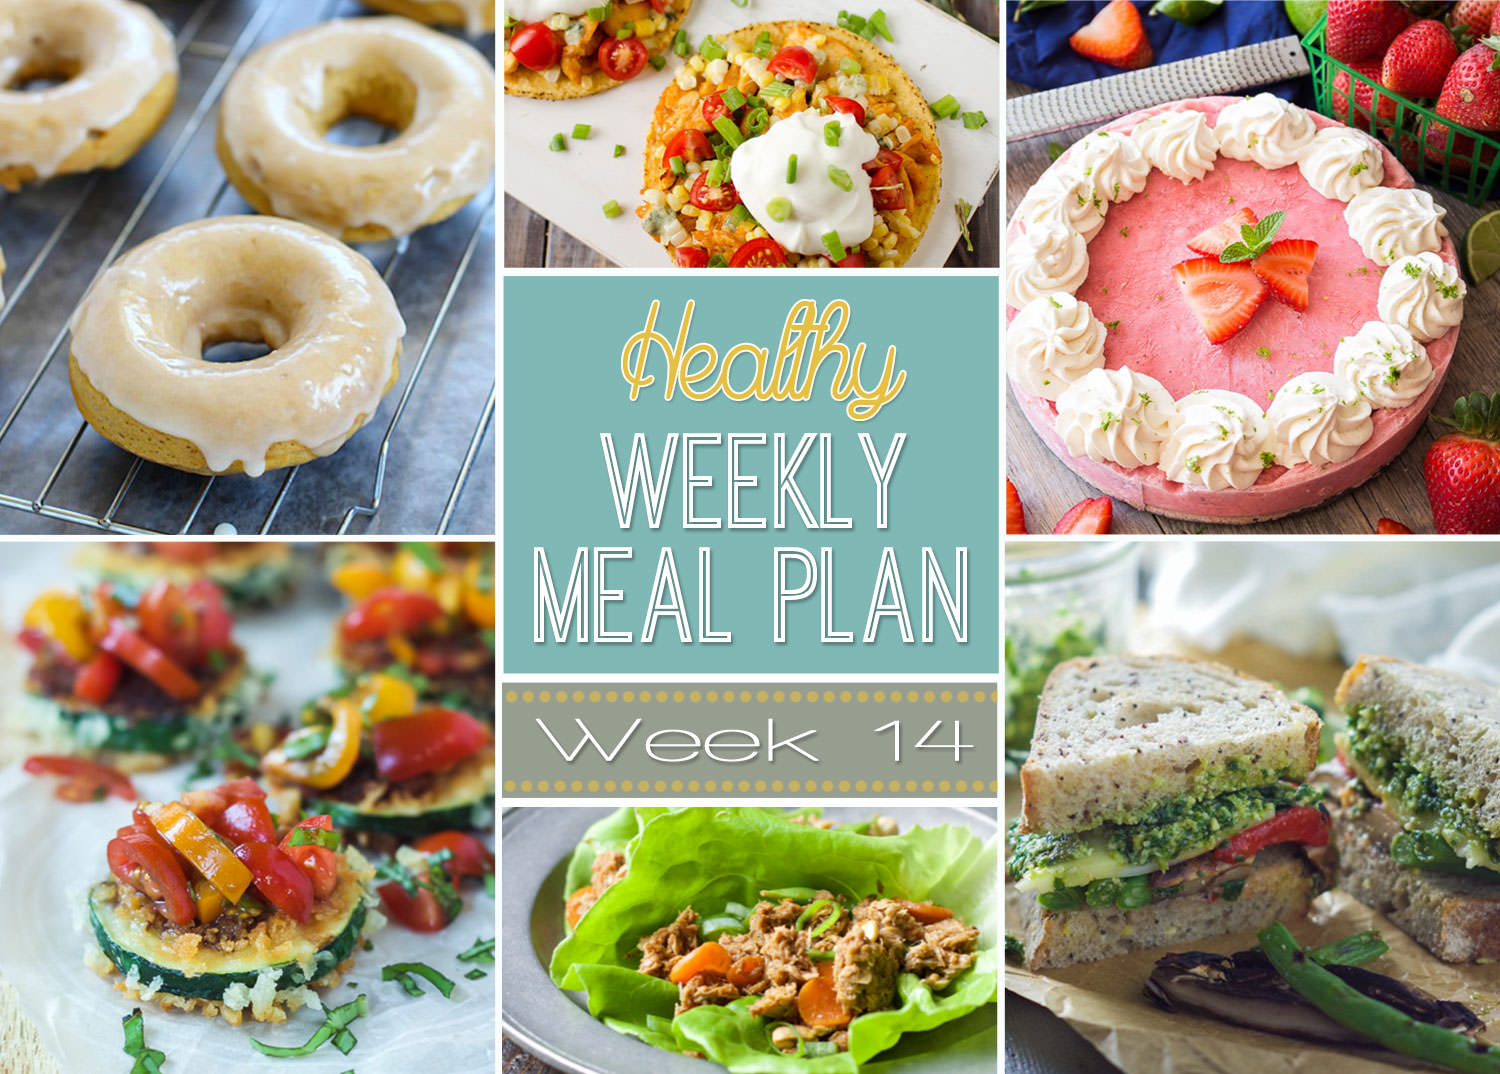 Healthy Meal Plan Week 14